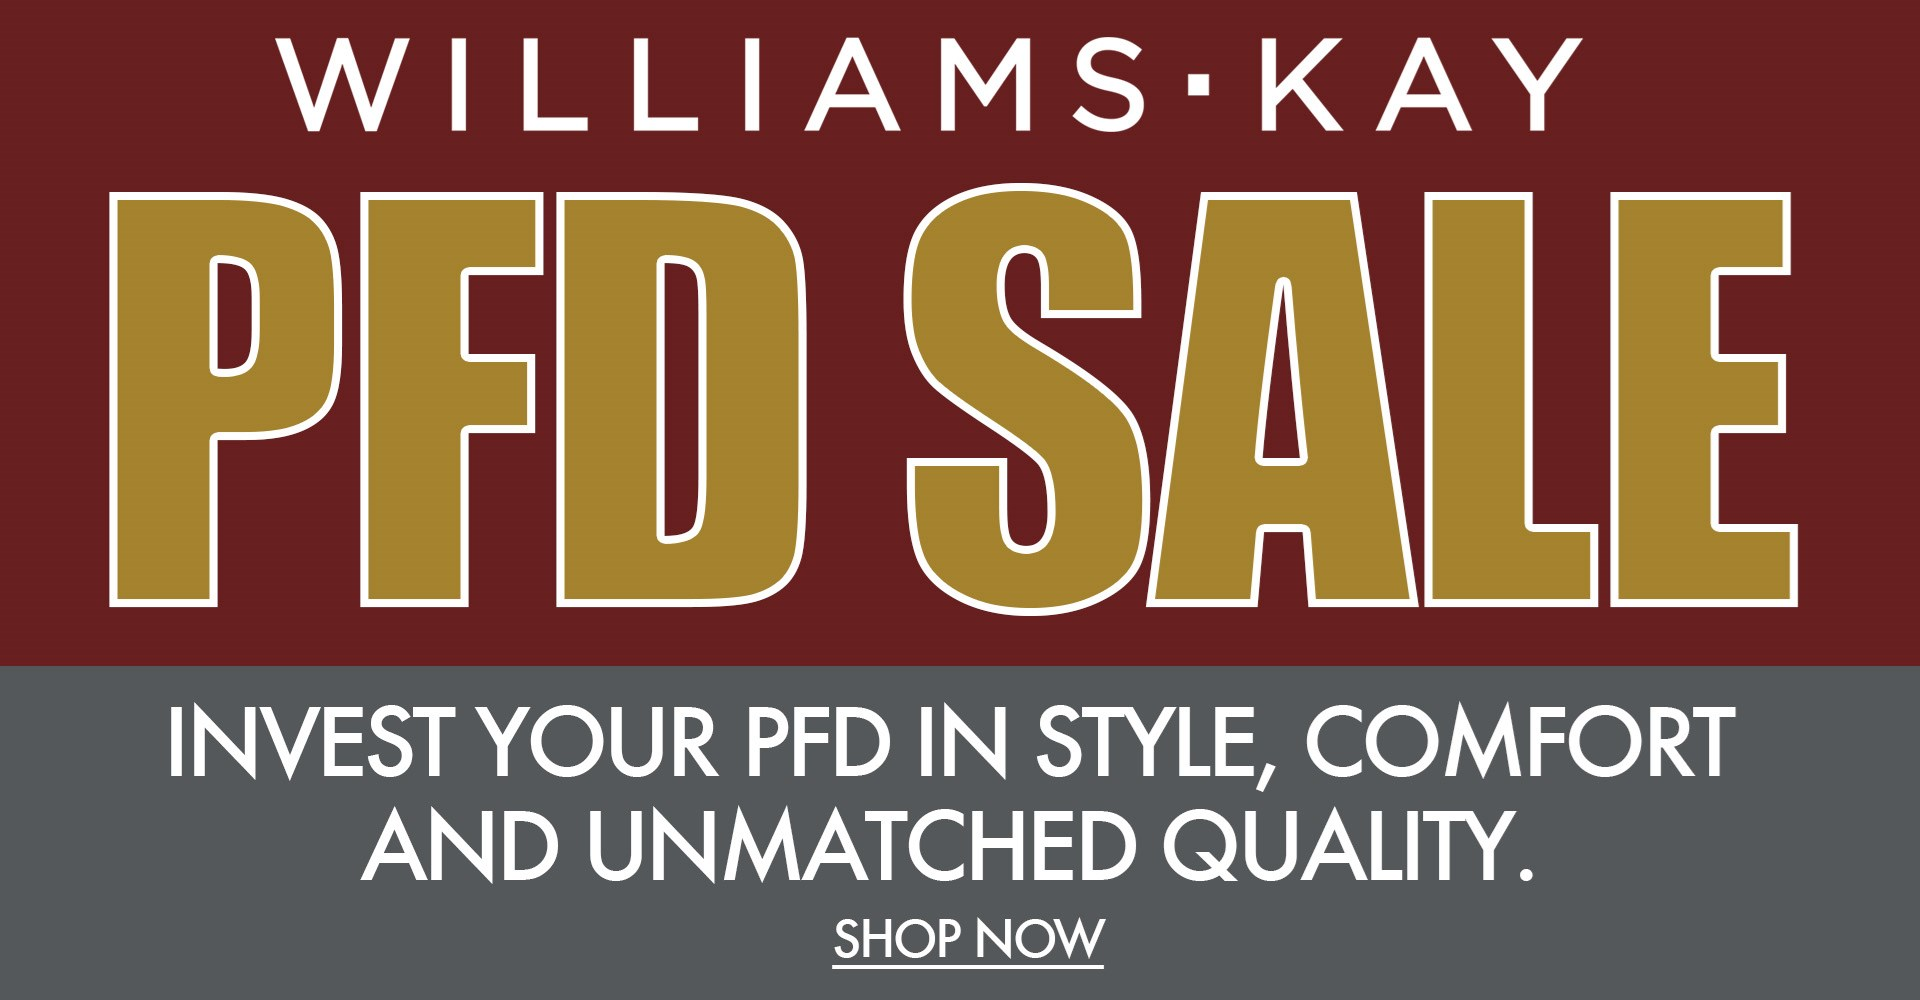 Williams and Kay PFD Sale